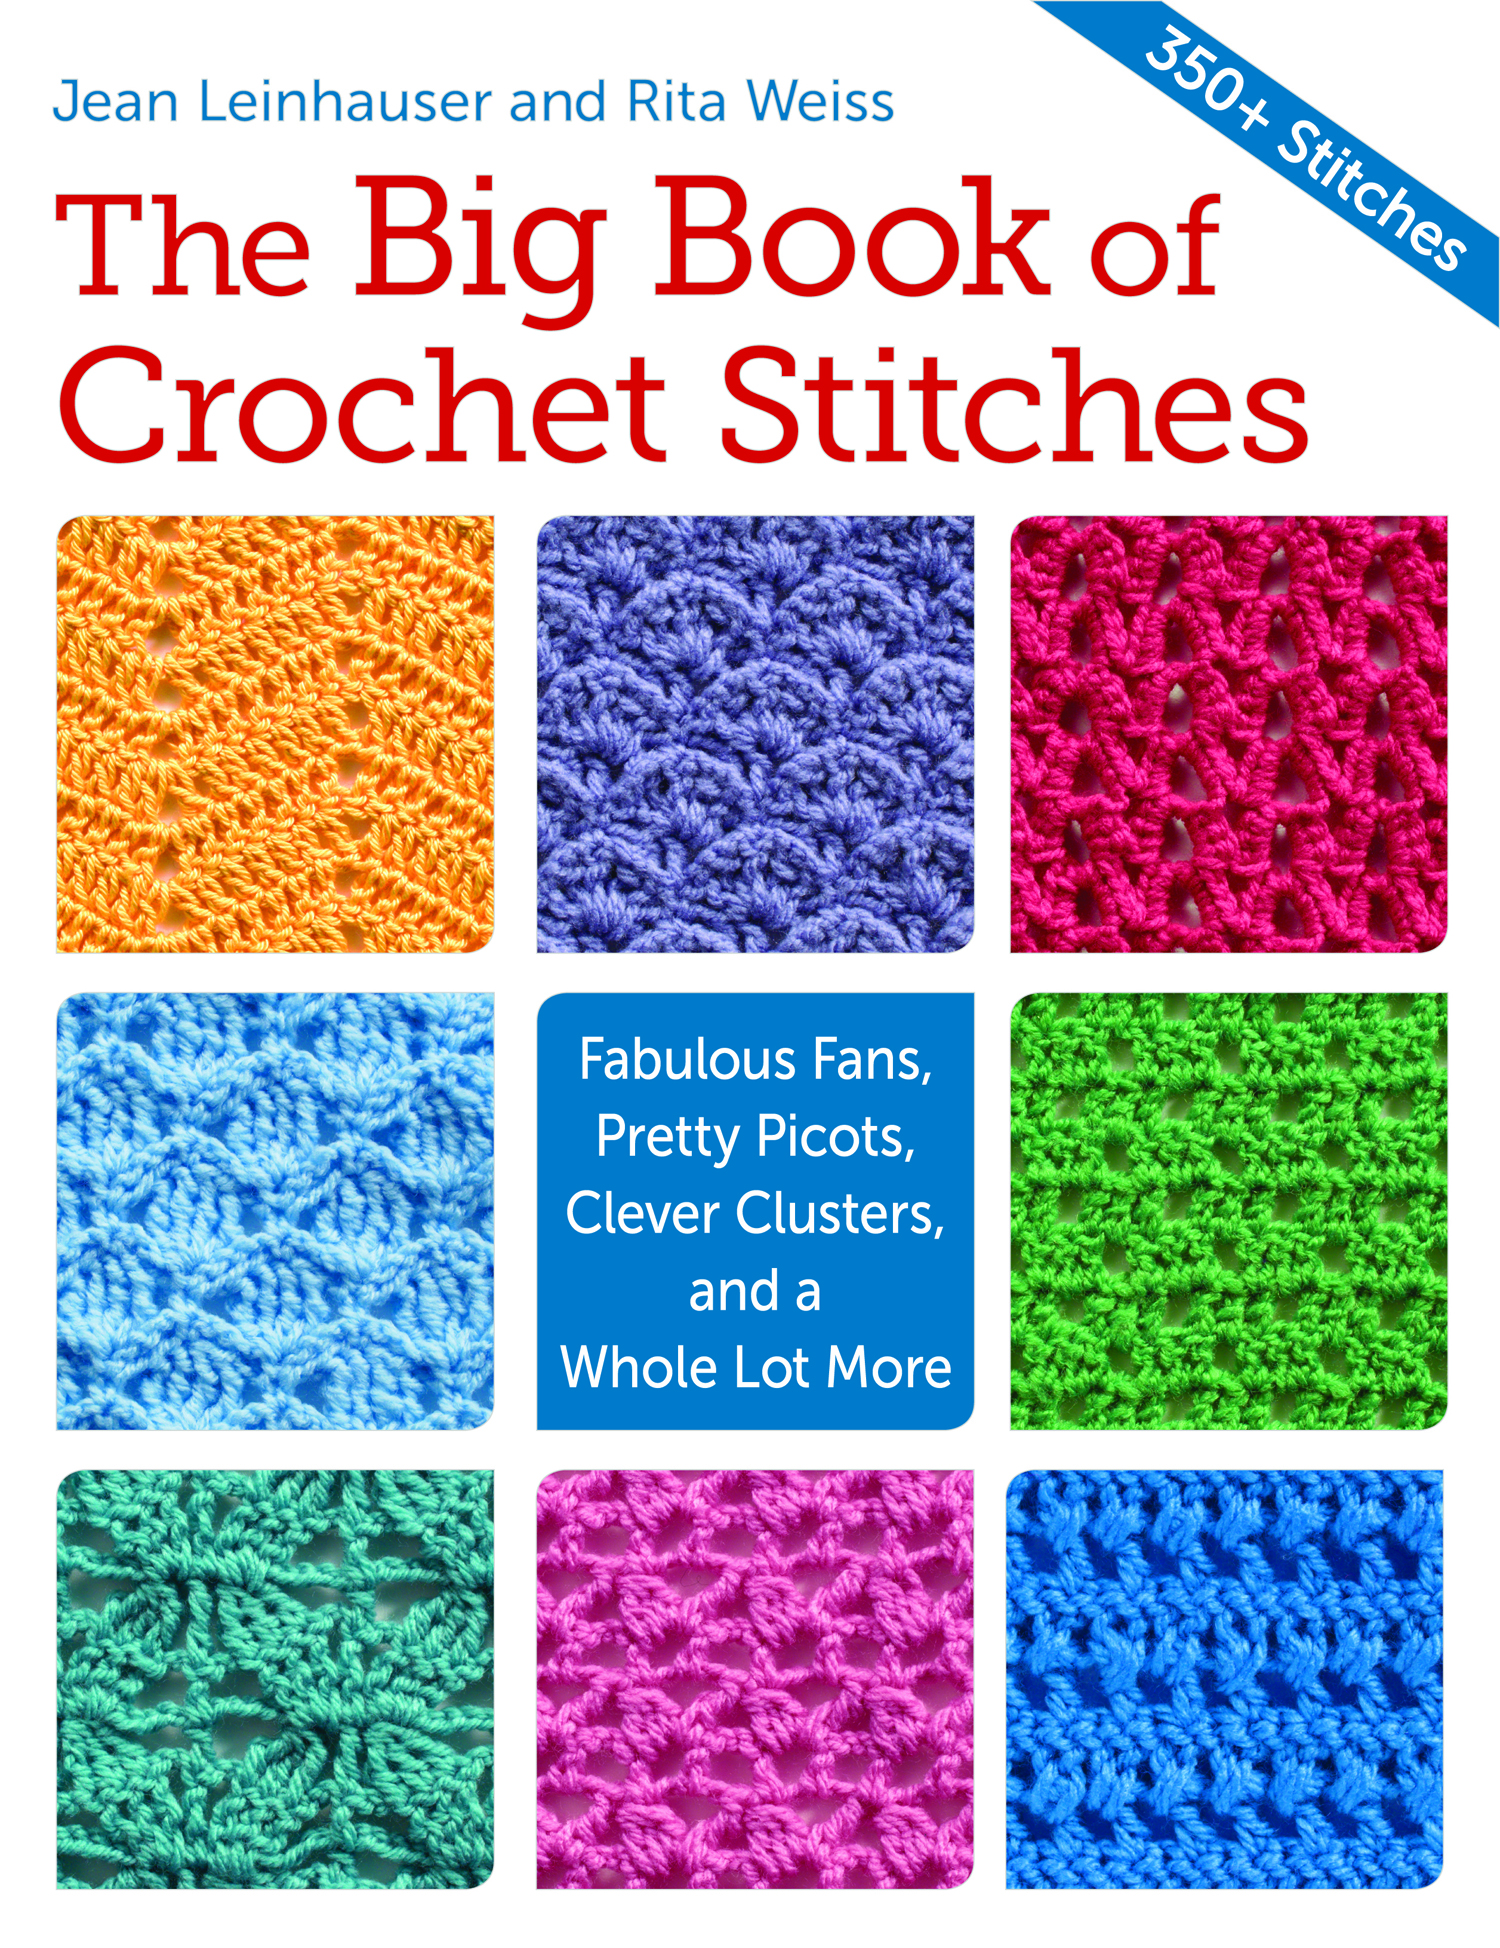 Crochet Stitches Directory : The Big Book of Crochet Stitches ? Oombawka Design Crochet